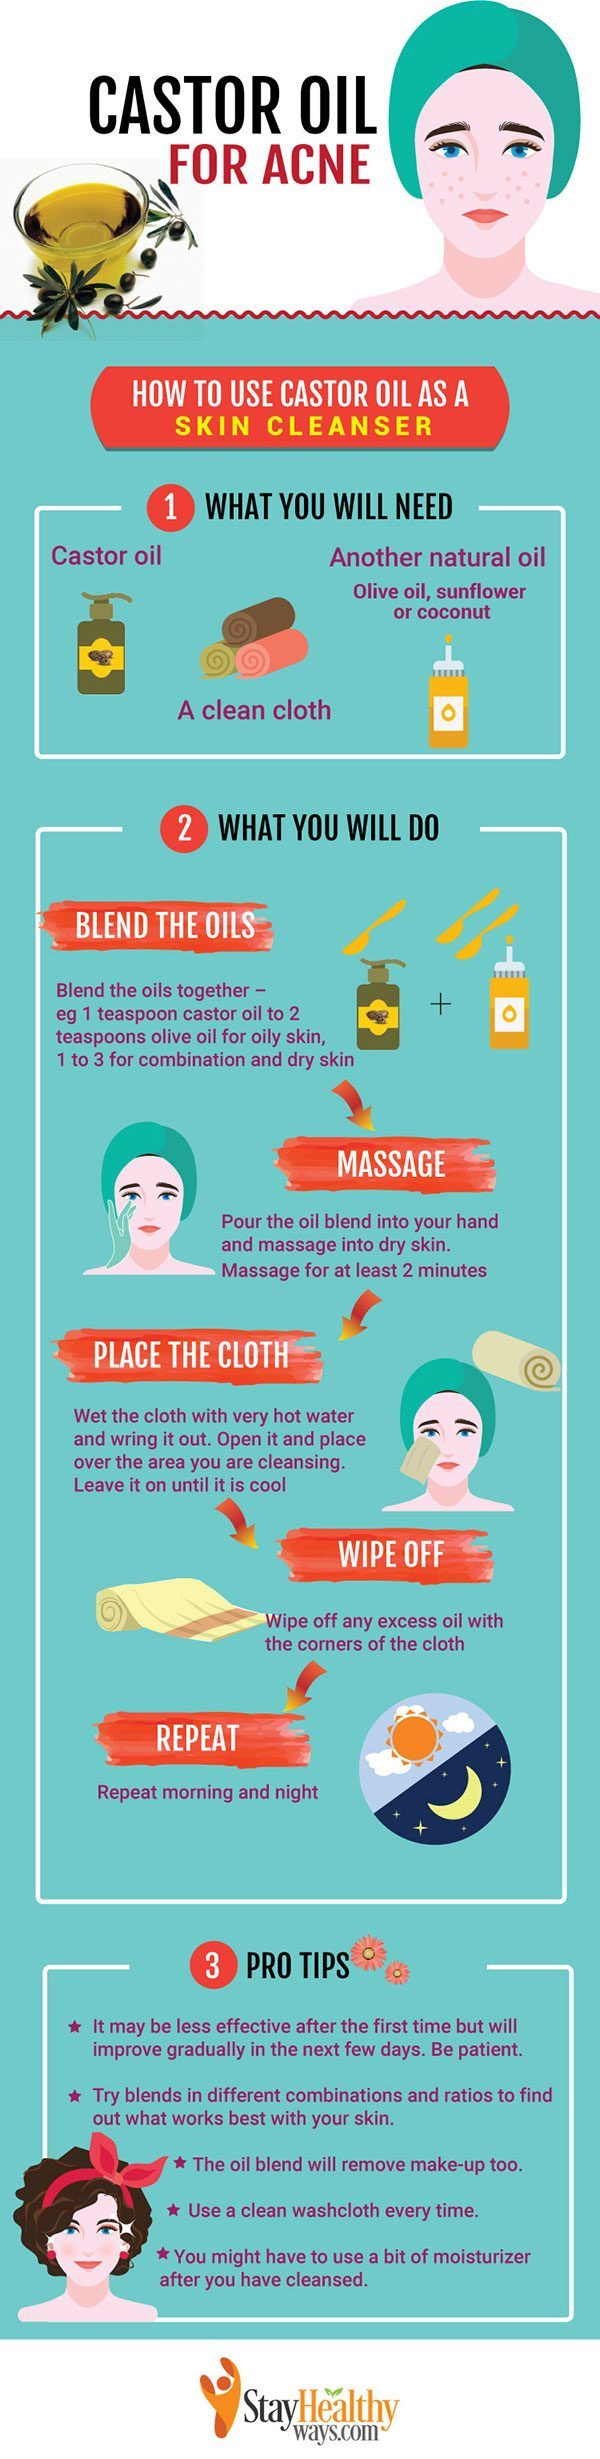 castor oil for acne infographic